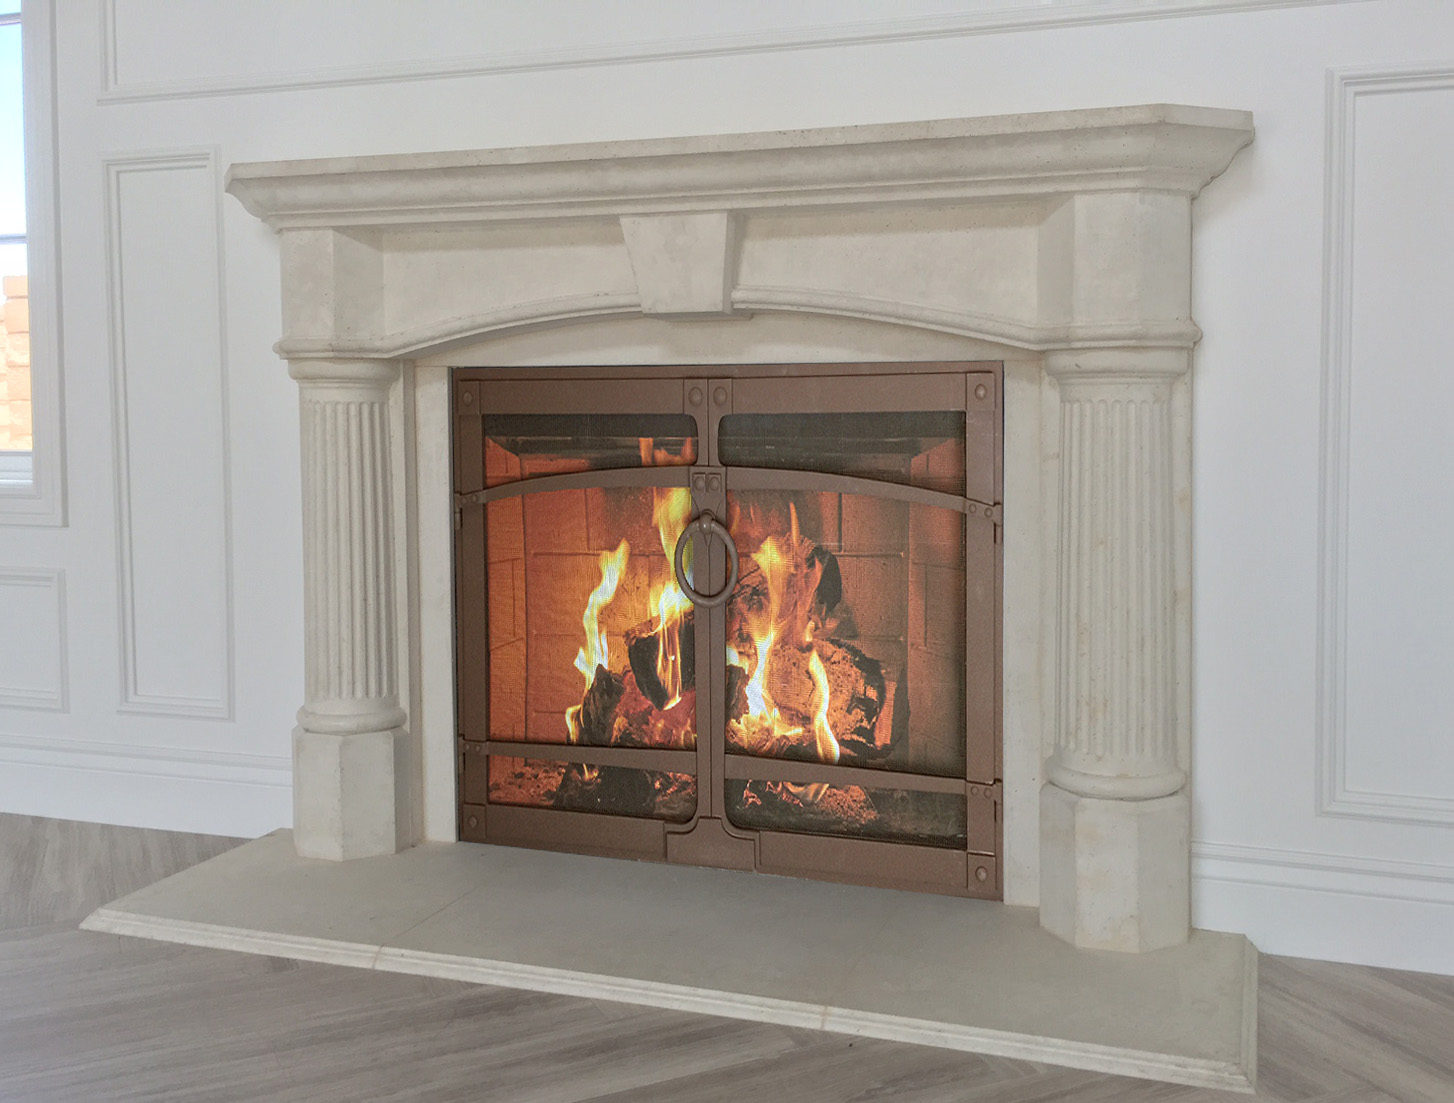 Model 103 Fireplace mantel